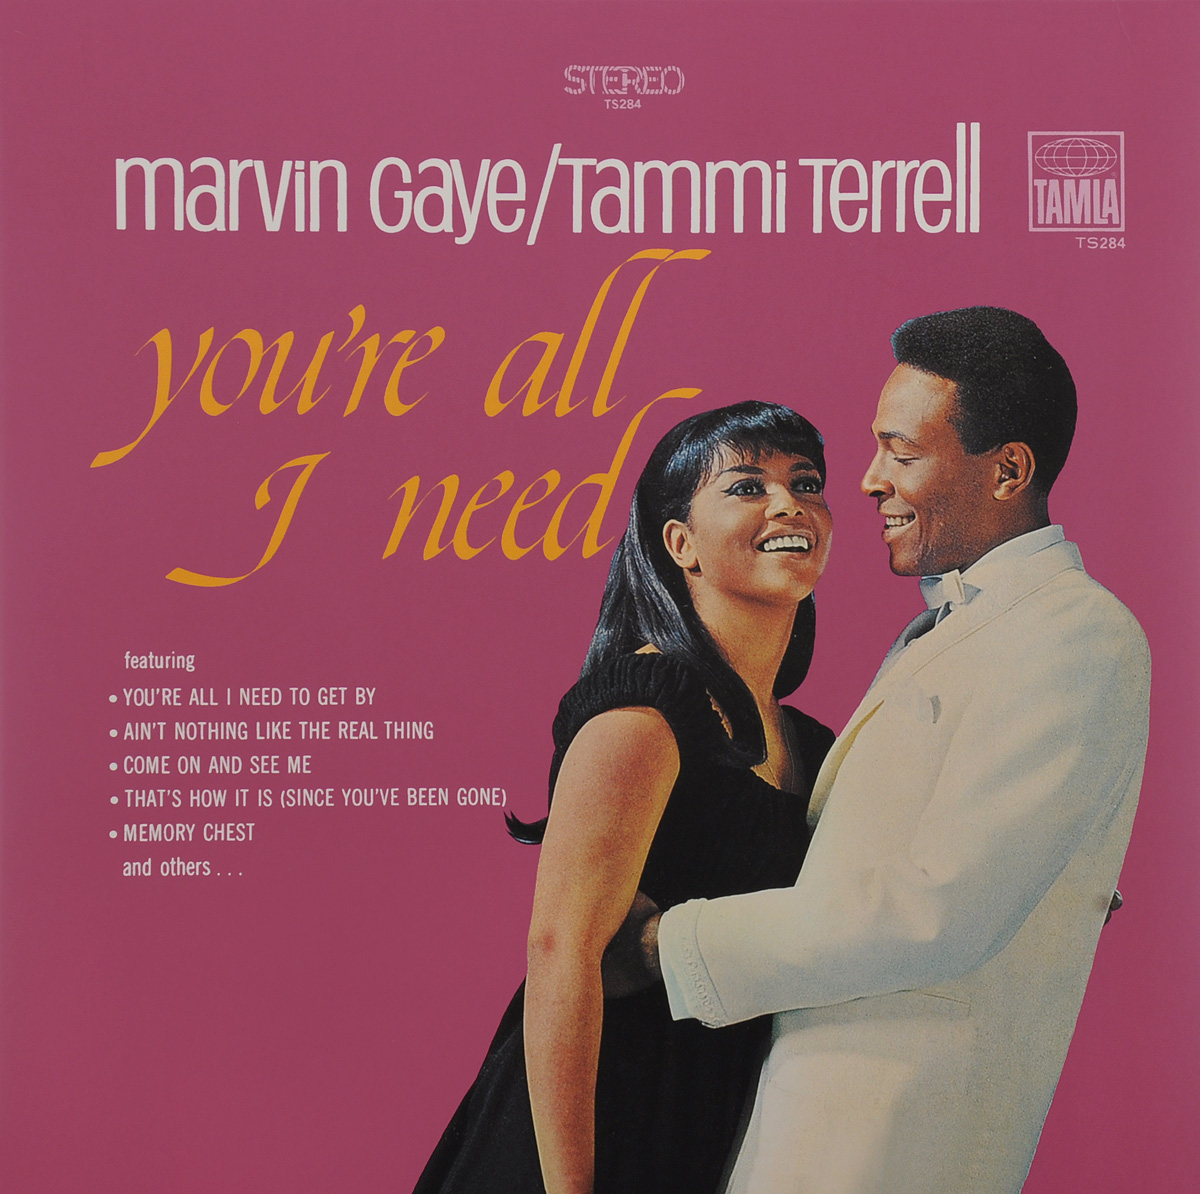 Марвин Гэй,Тамми Тэррелл Marvin Gaye & Tammi Terrell. You're All I Need (LP) марвин гэй marvin gaye trouble man motion picture soundtrack lp